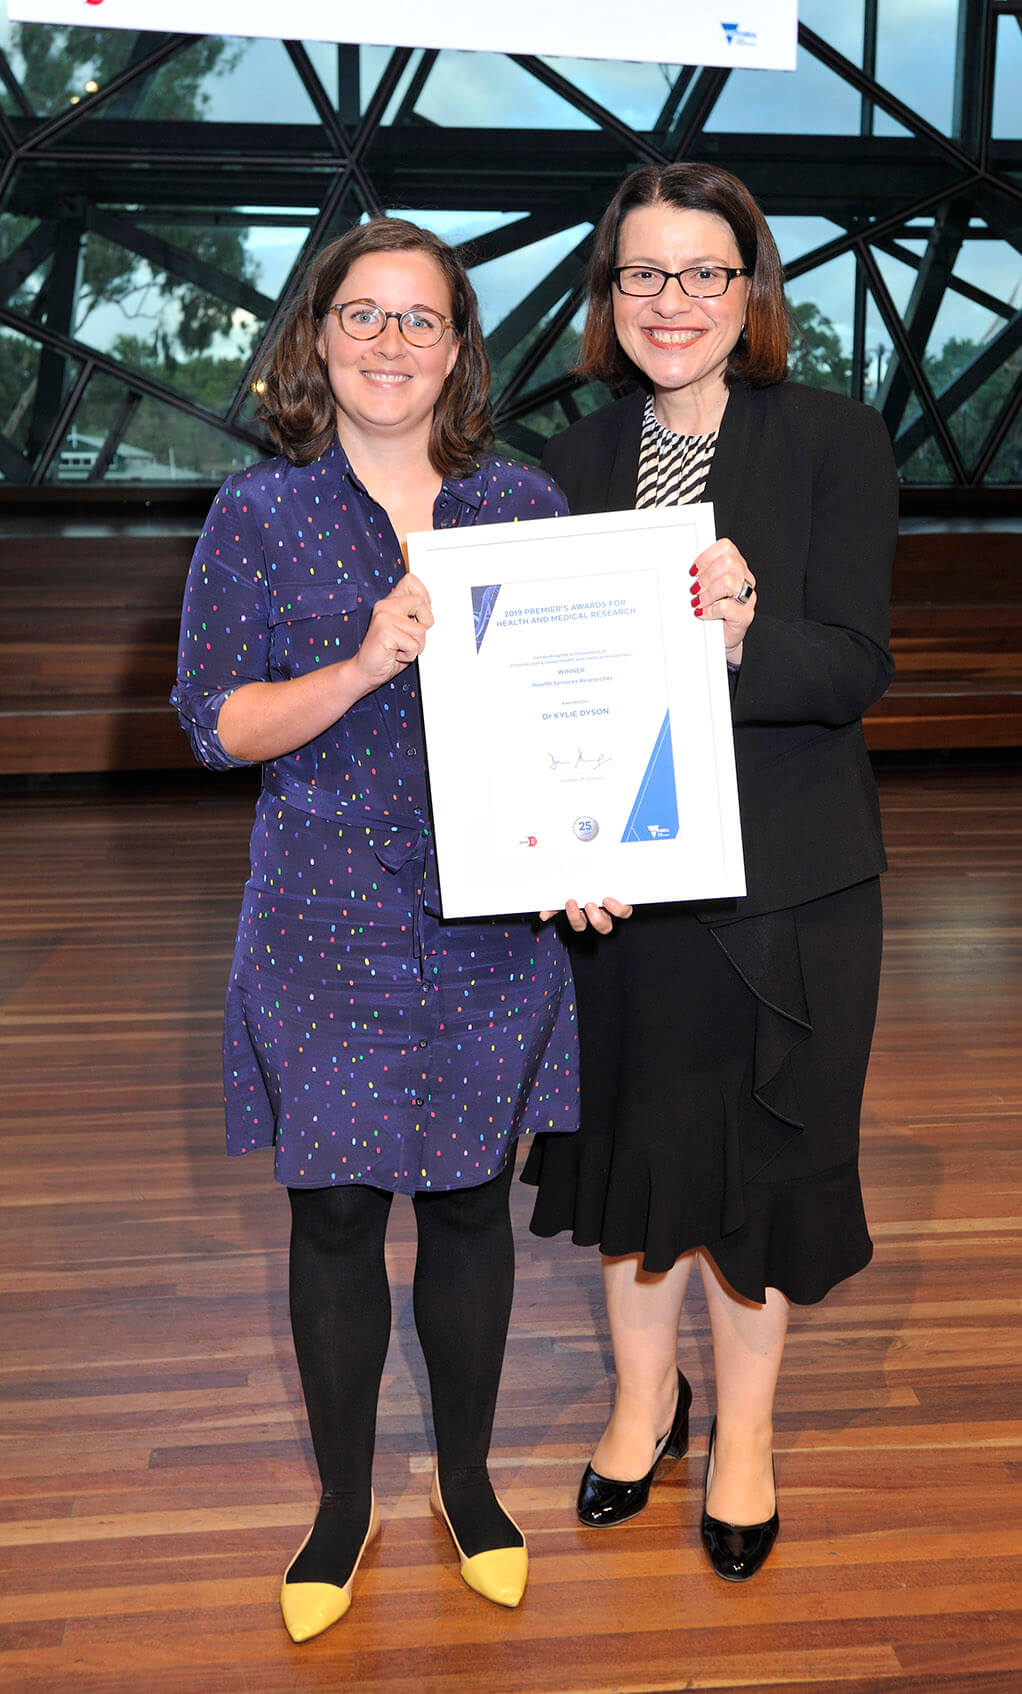 Premier's Awards for Health and Medical Research - health.vic